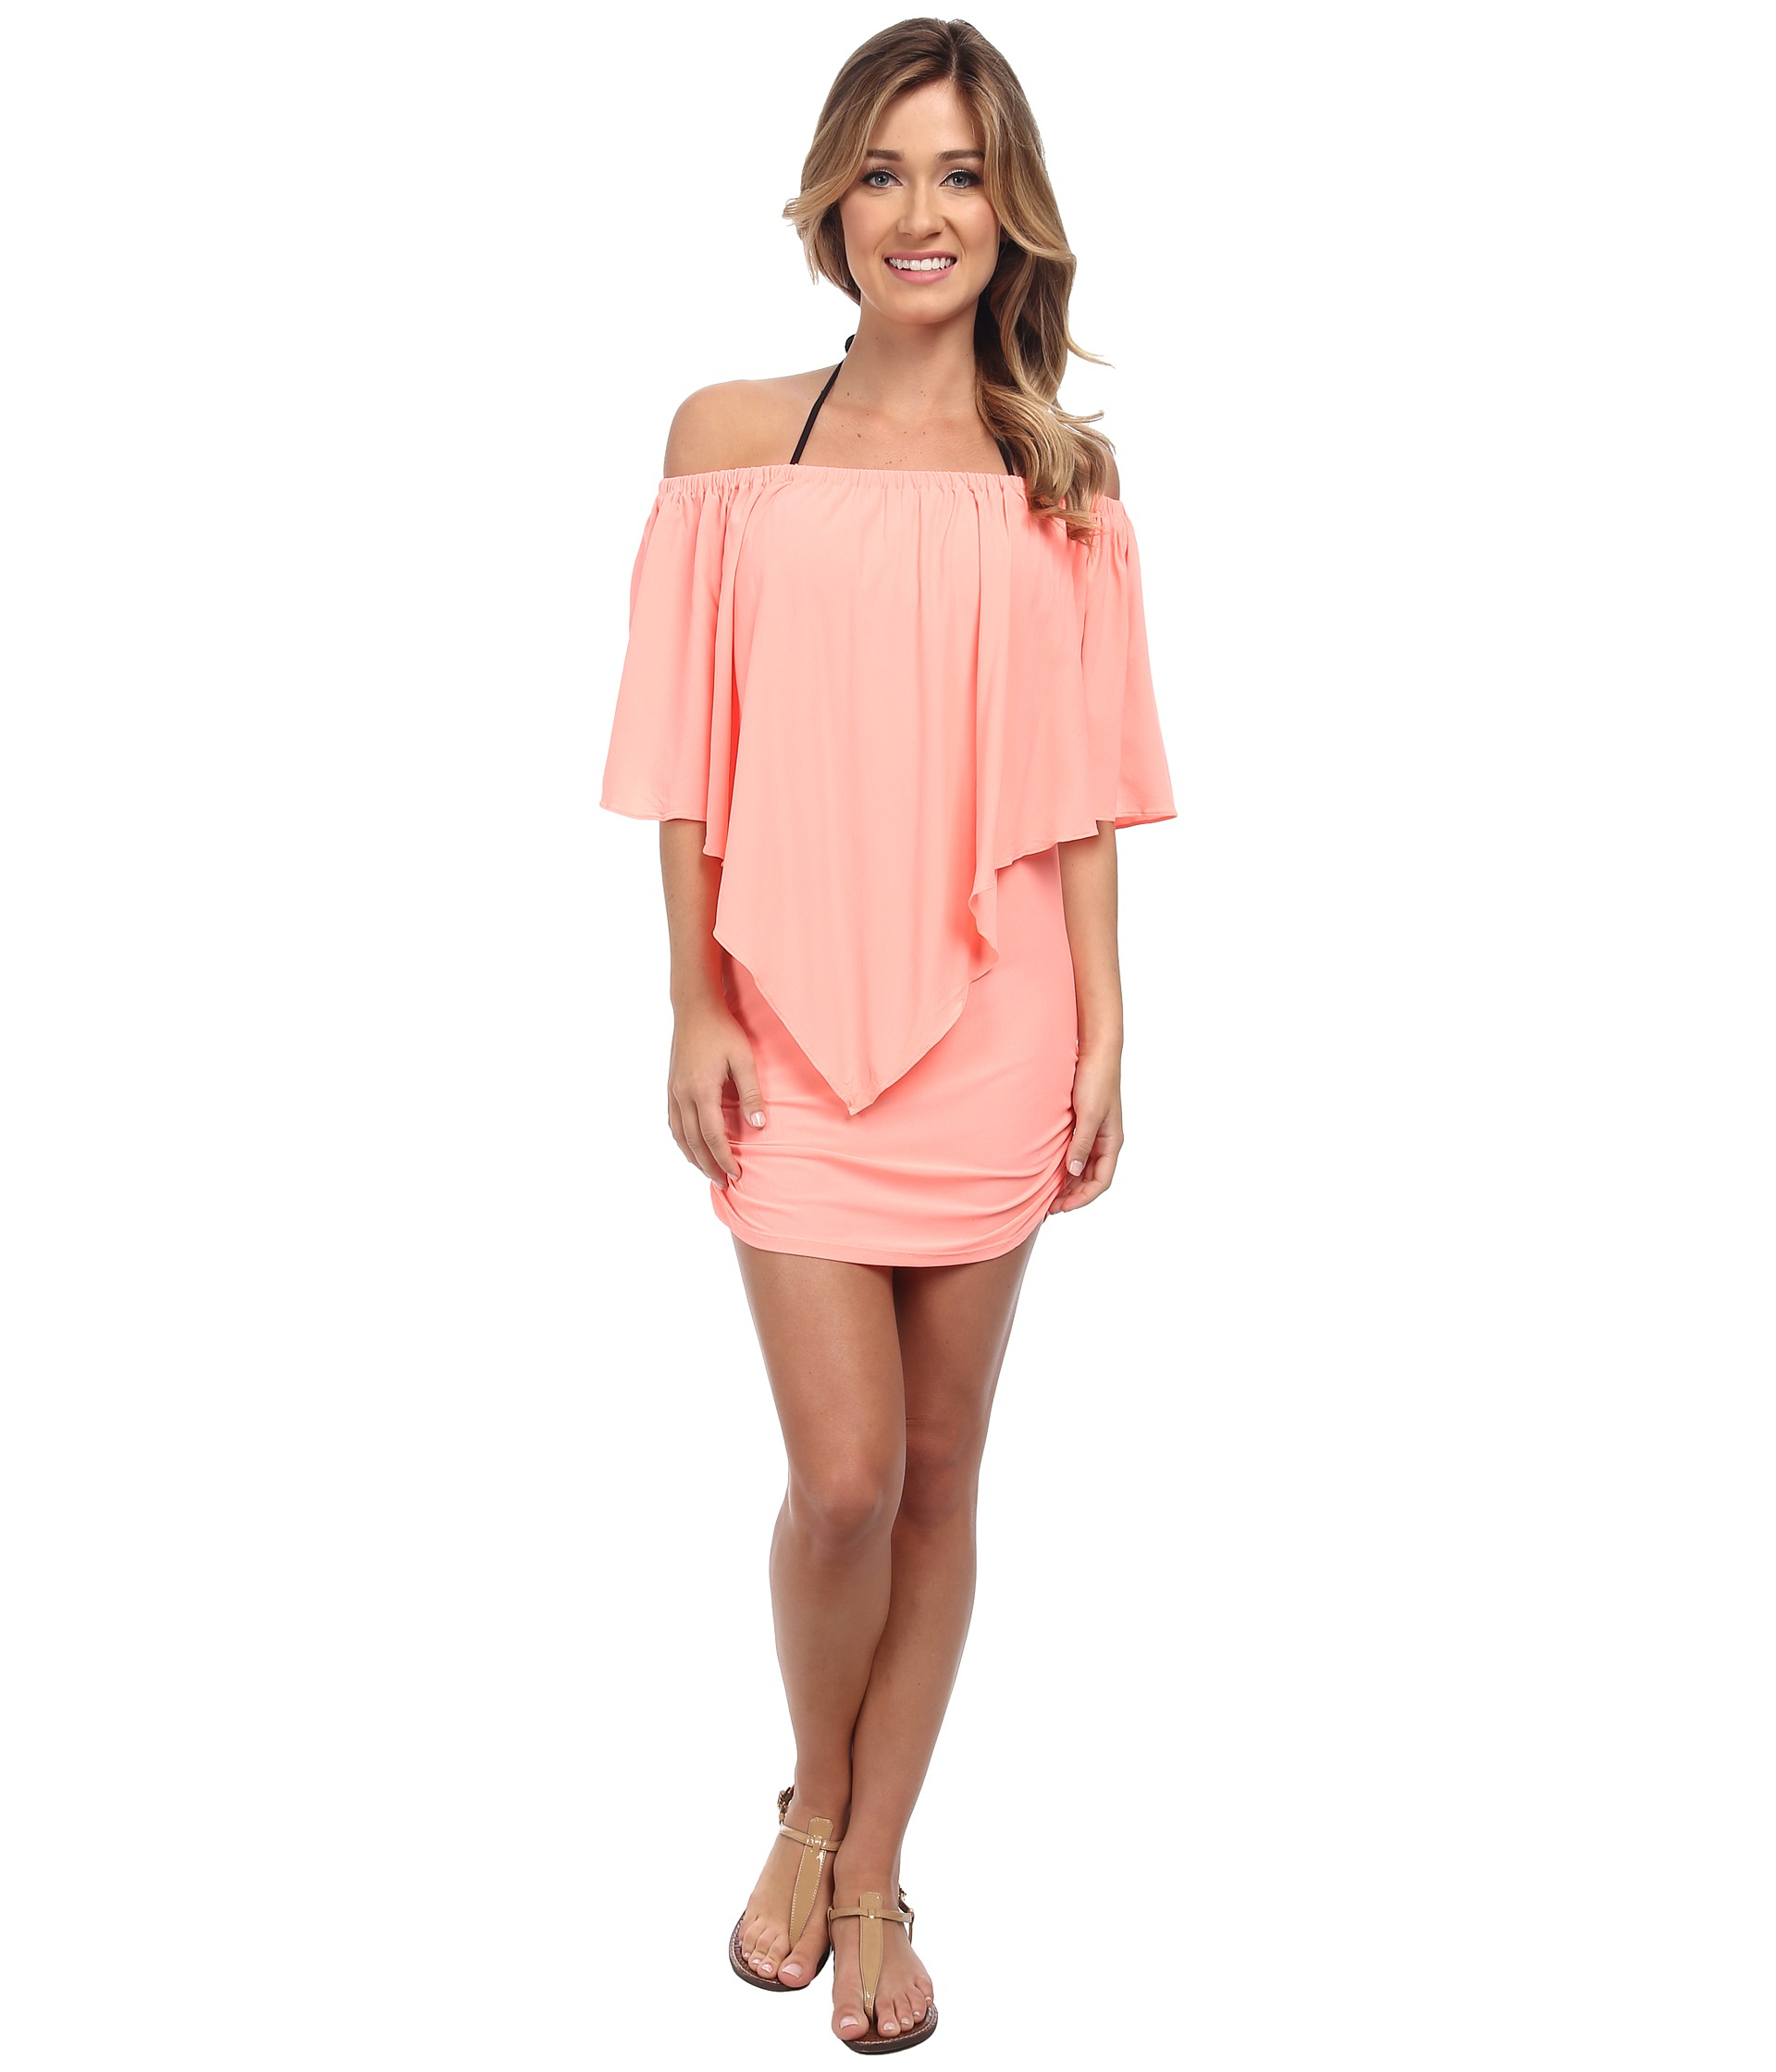 024e145f750 Lyst - Luli Fama Cosita Buena Party Dress Cover-Up in Pink